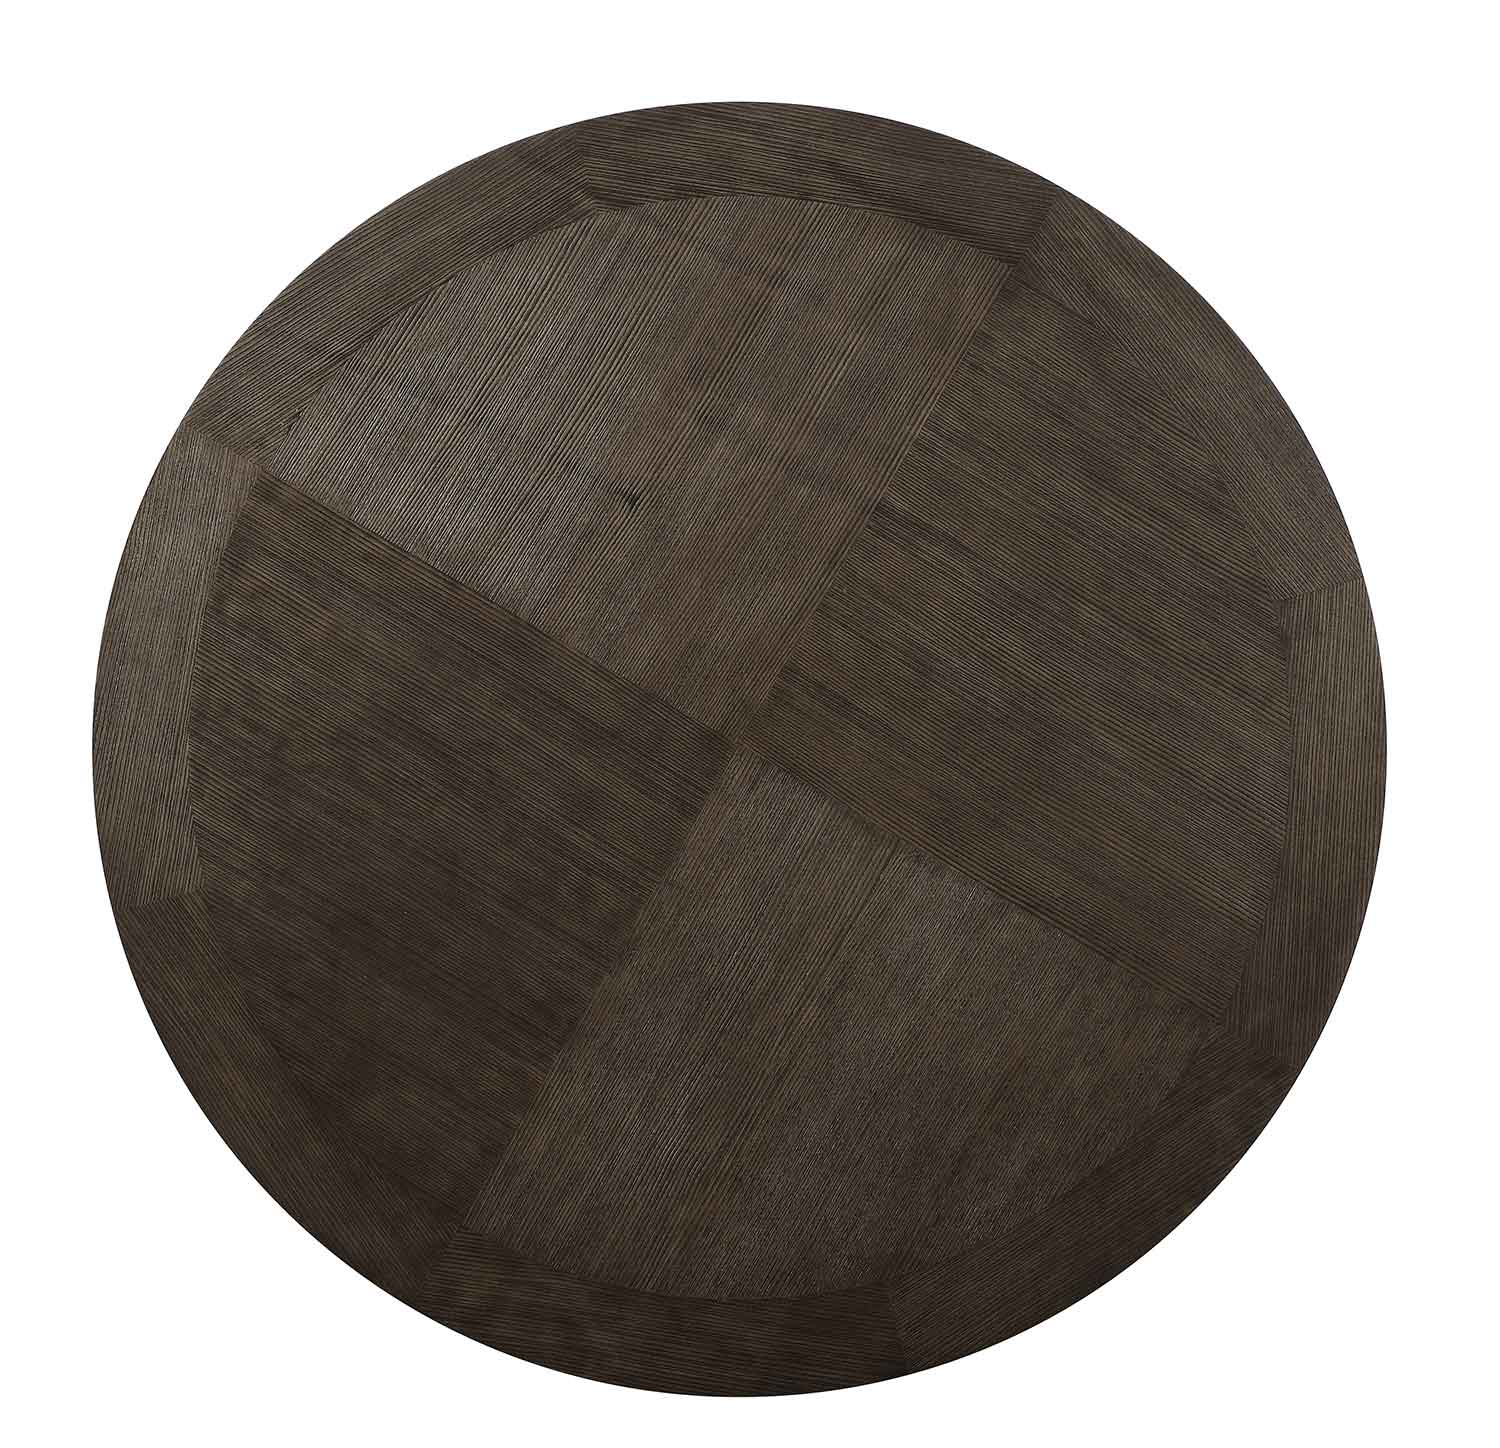 Homelegance Ibiza Round Dining Table - Light Oak